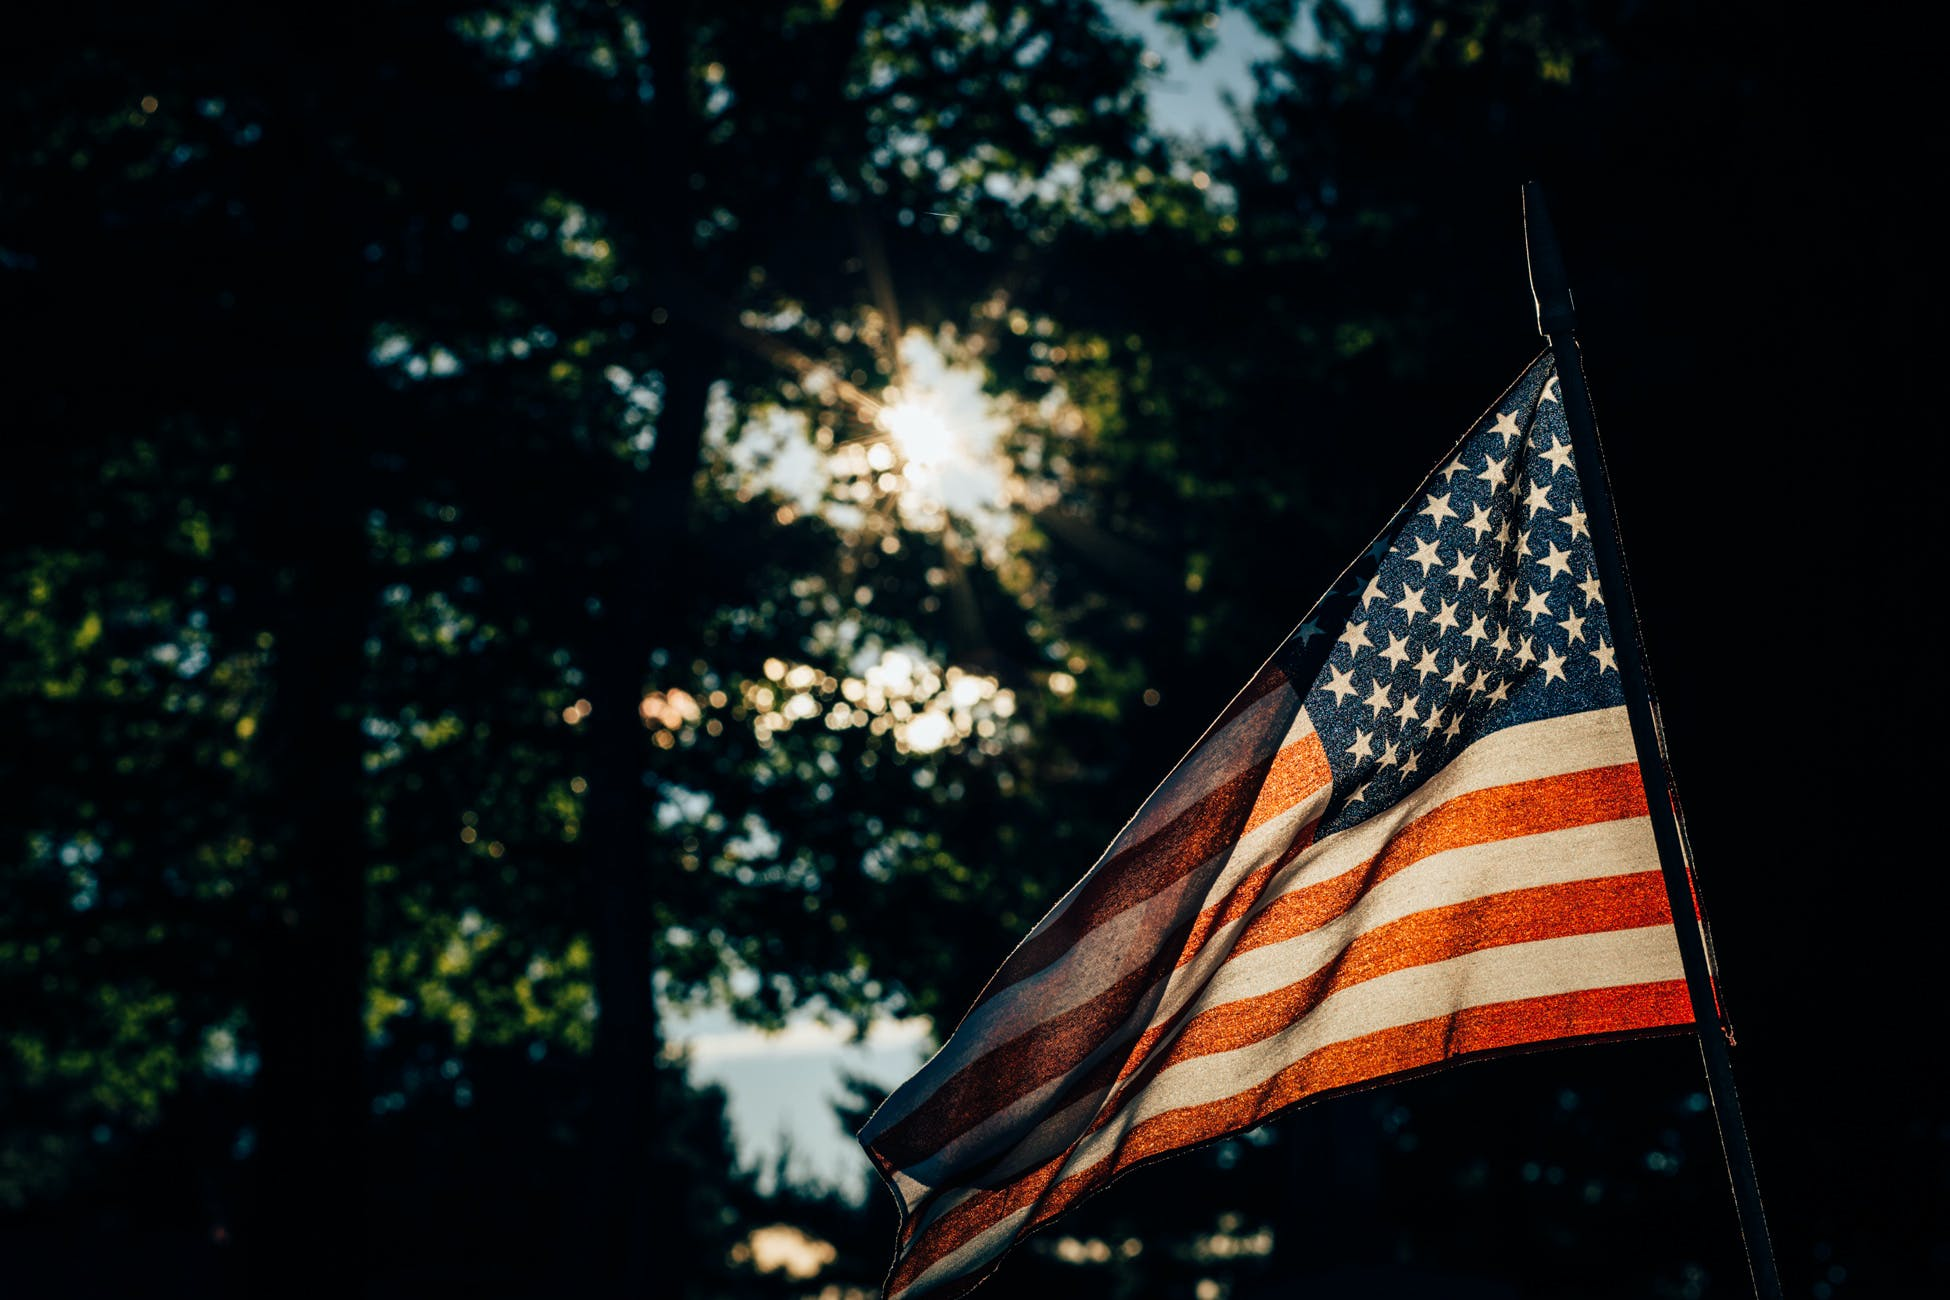 Free stock photo of sky, trees, flag, america